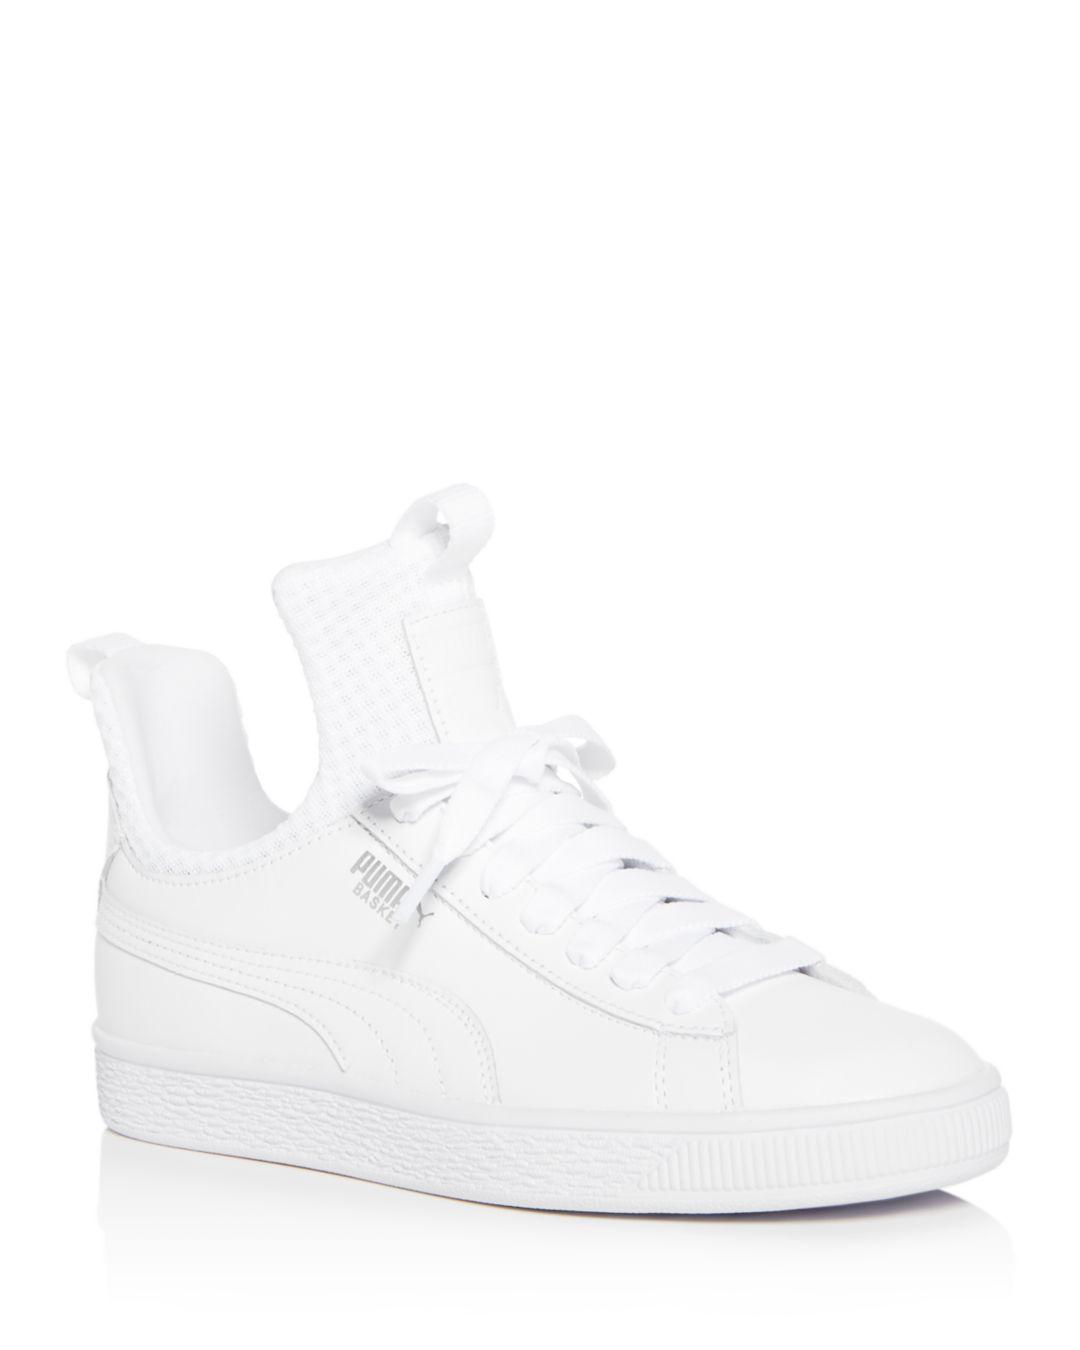 88df2a39bff0 Lyst - PUMA Women s Basket Fierce En Point Leather Lace Up Sneakers ...